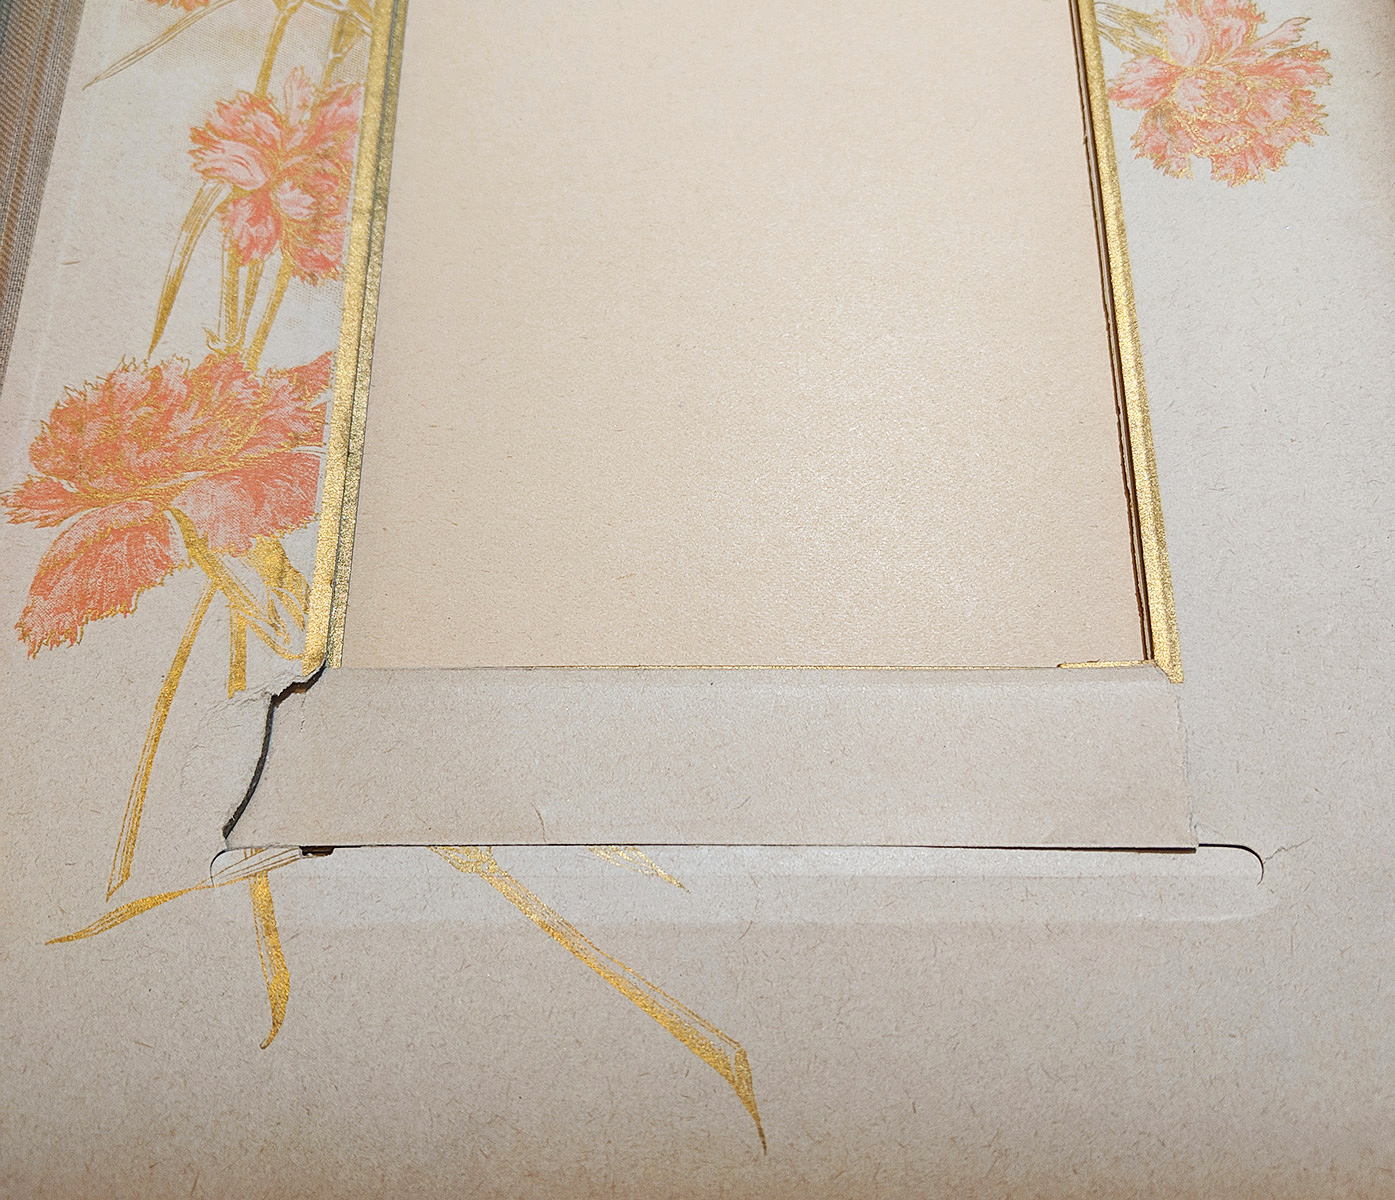 Improper removal of photographs damaged the ornate edges of the album's pages.